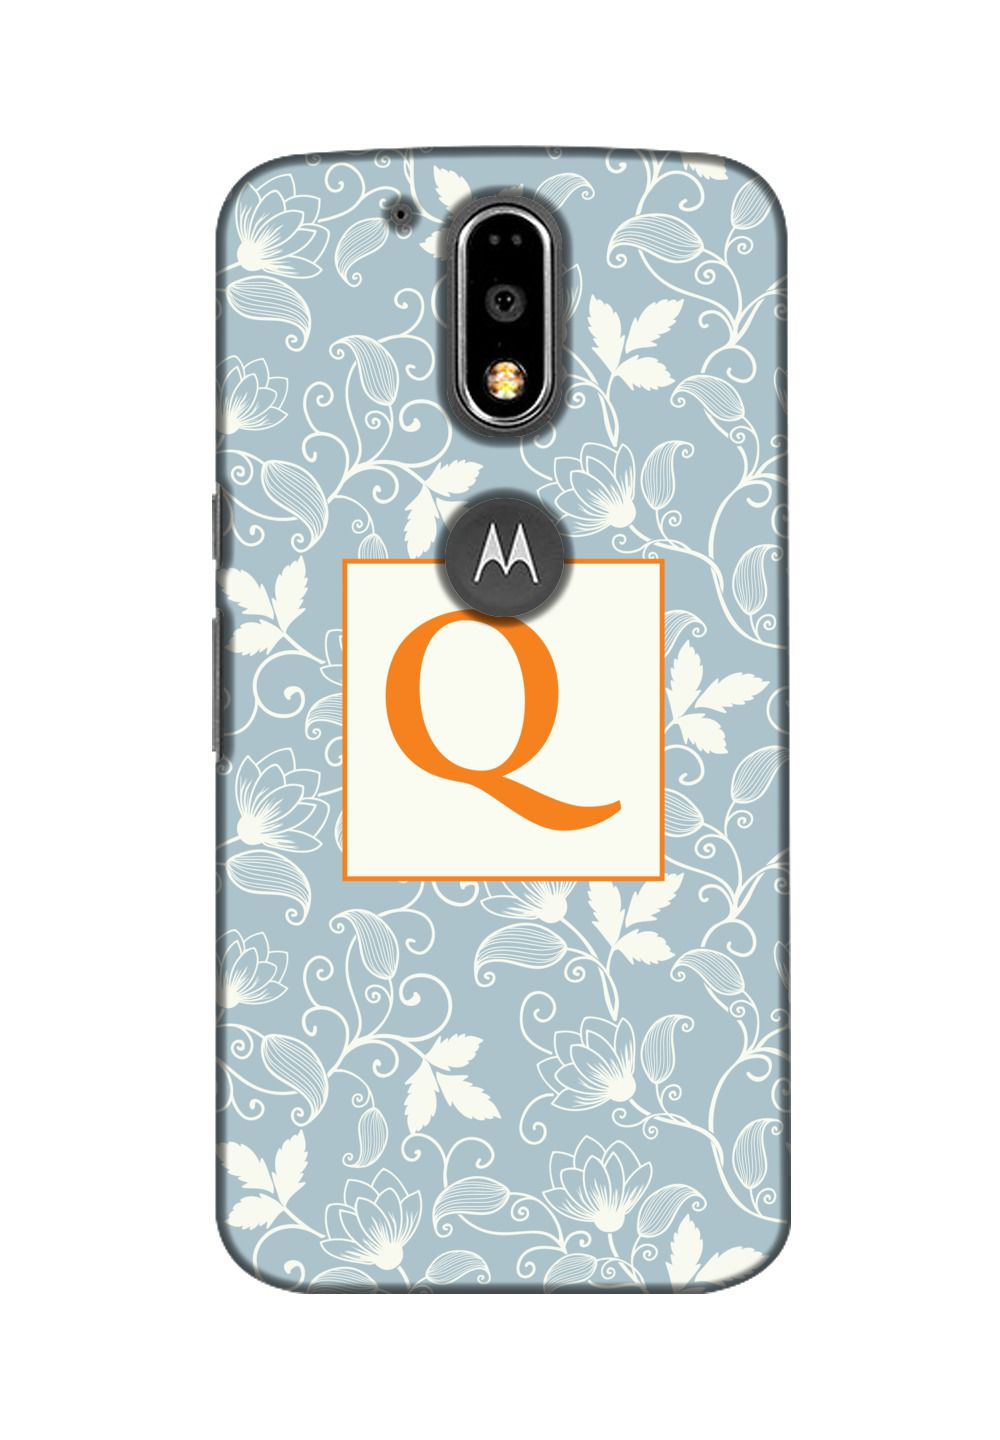 Moto G4 Plus 3D Back Covers By Design Worlds